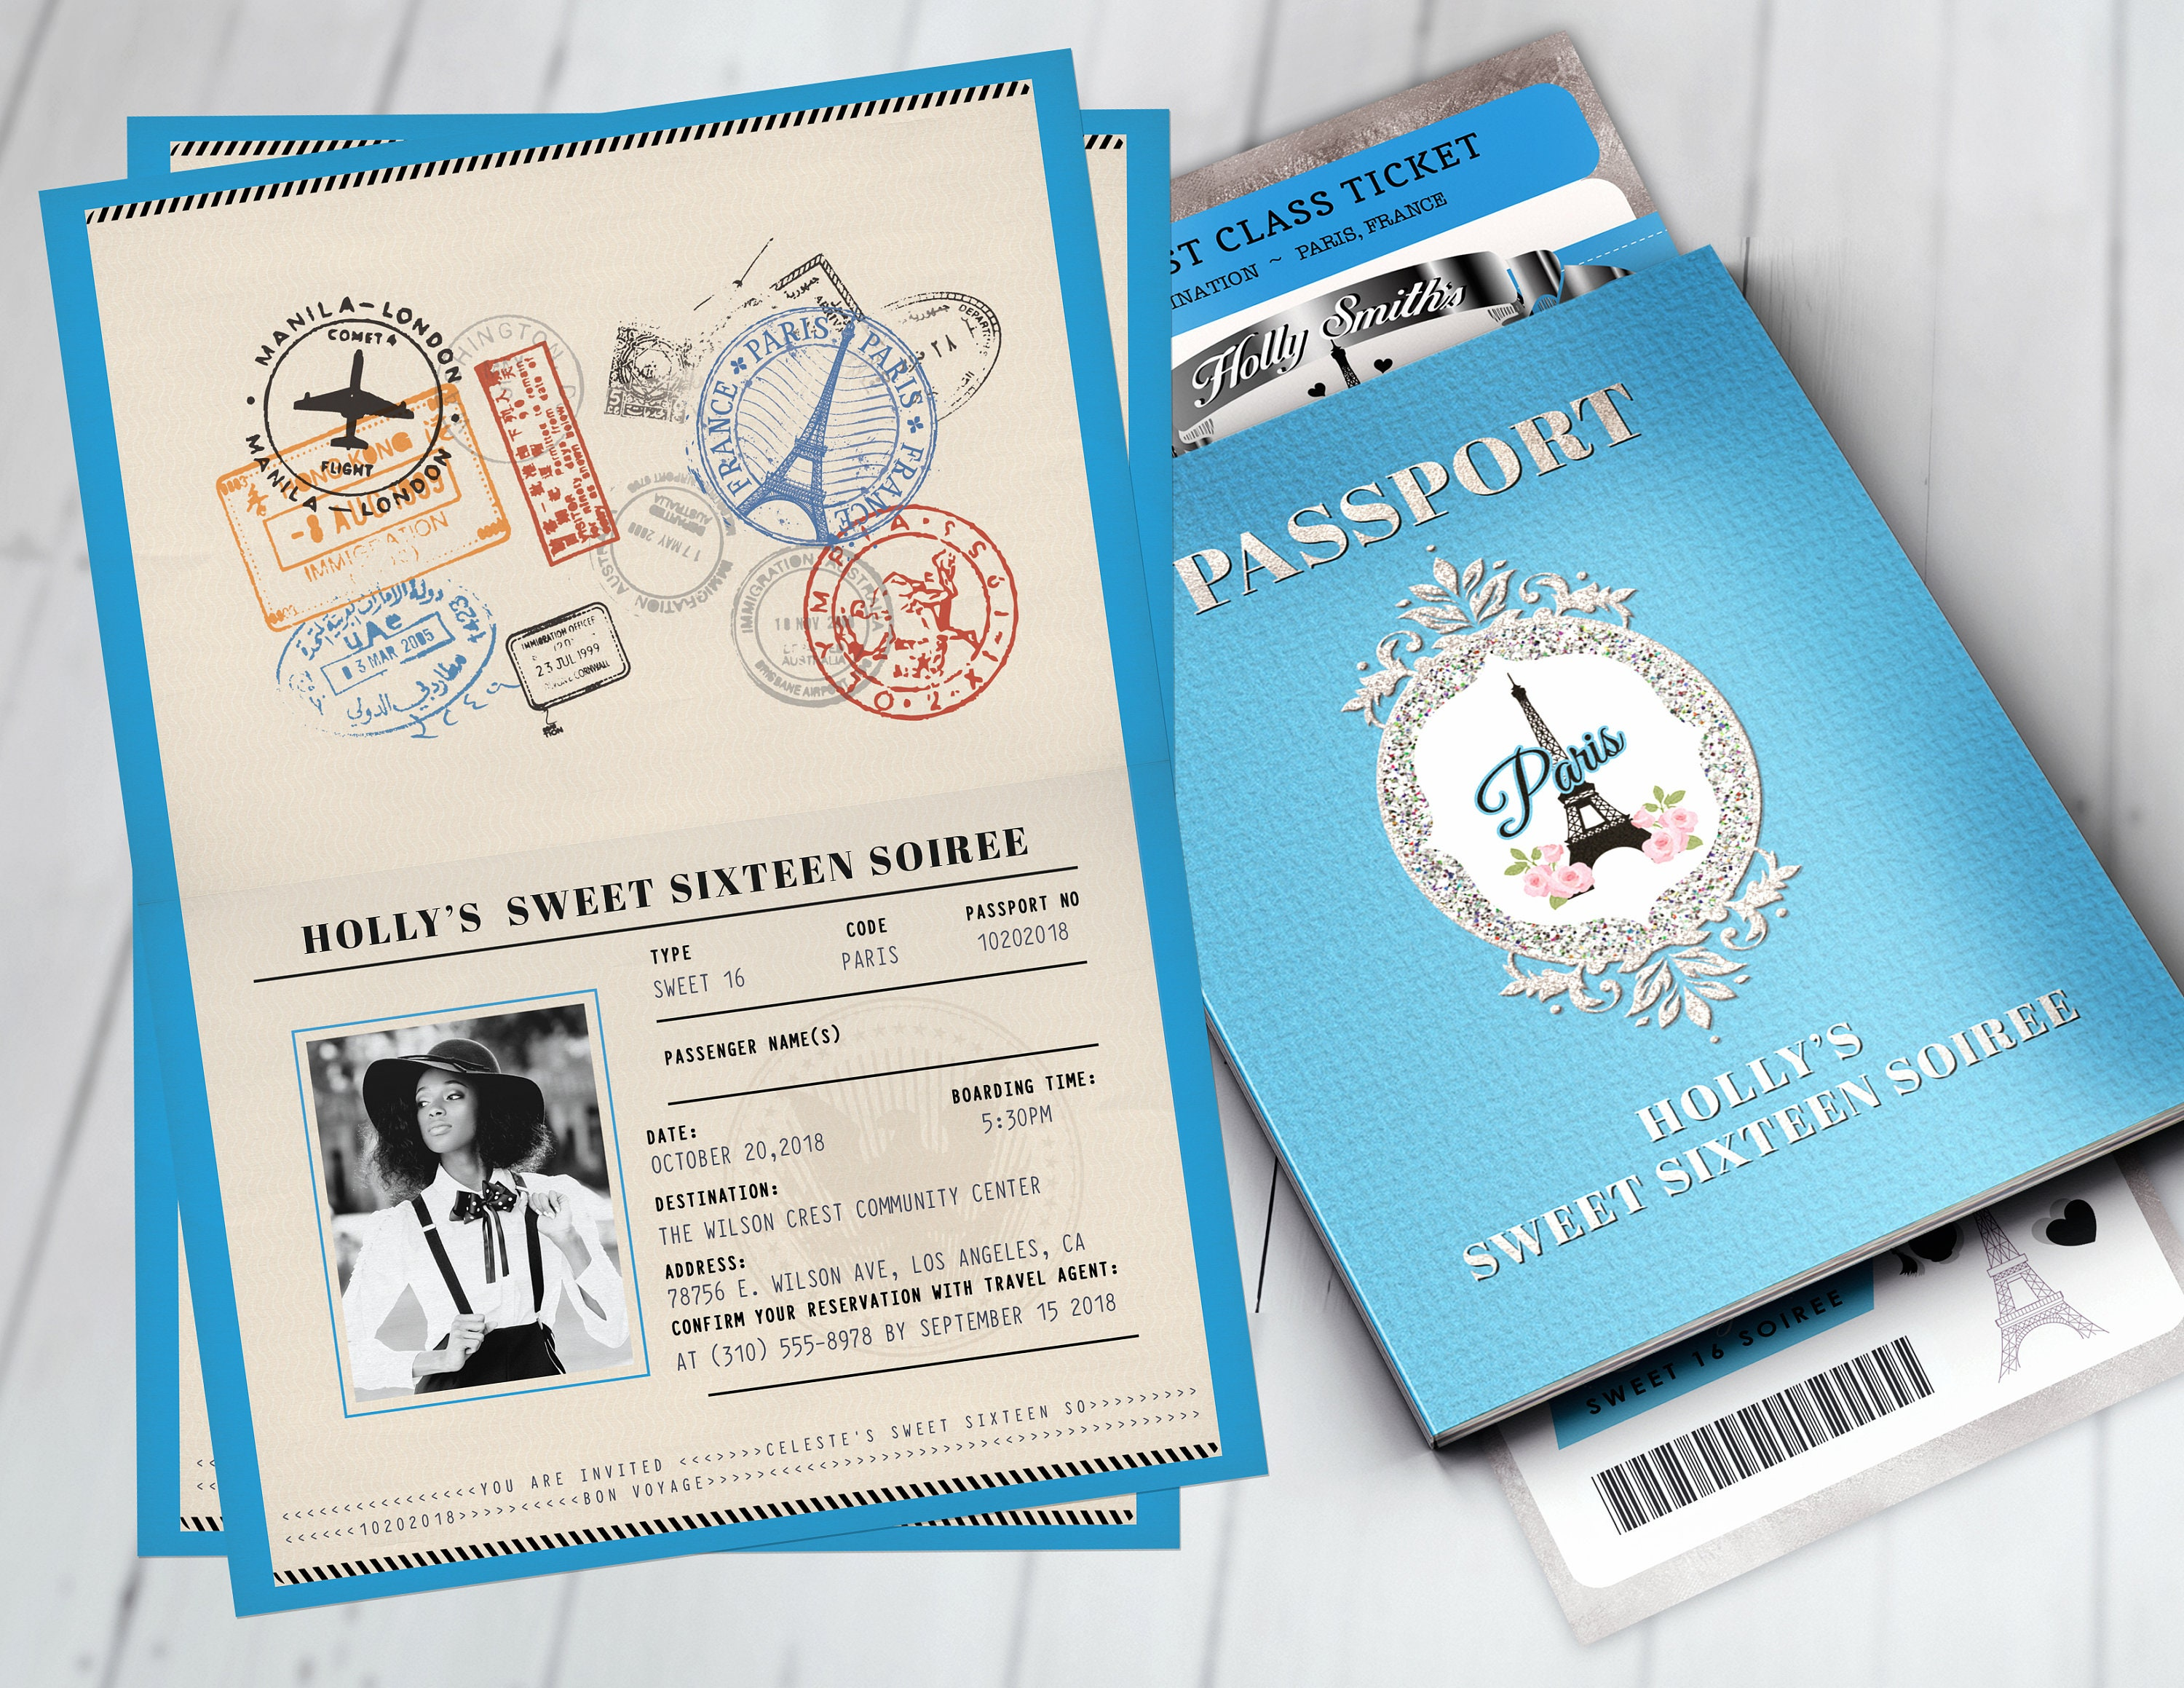 passport and ticket sweet 16 bridal shower invitation girl birthday party travel birthday party invitation paris digital files only